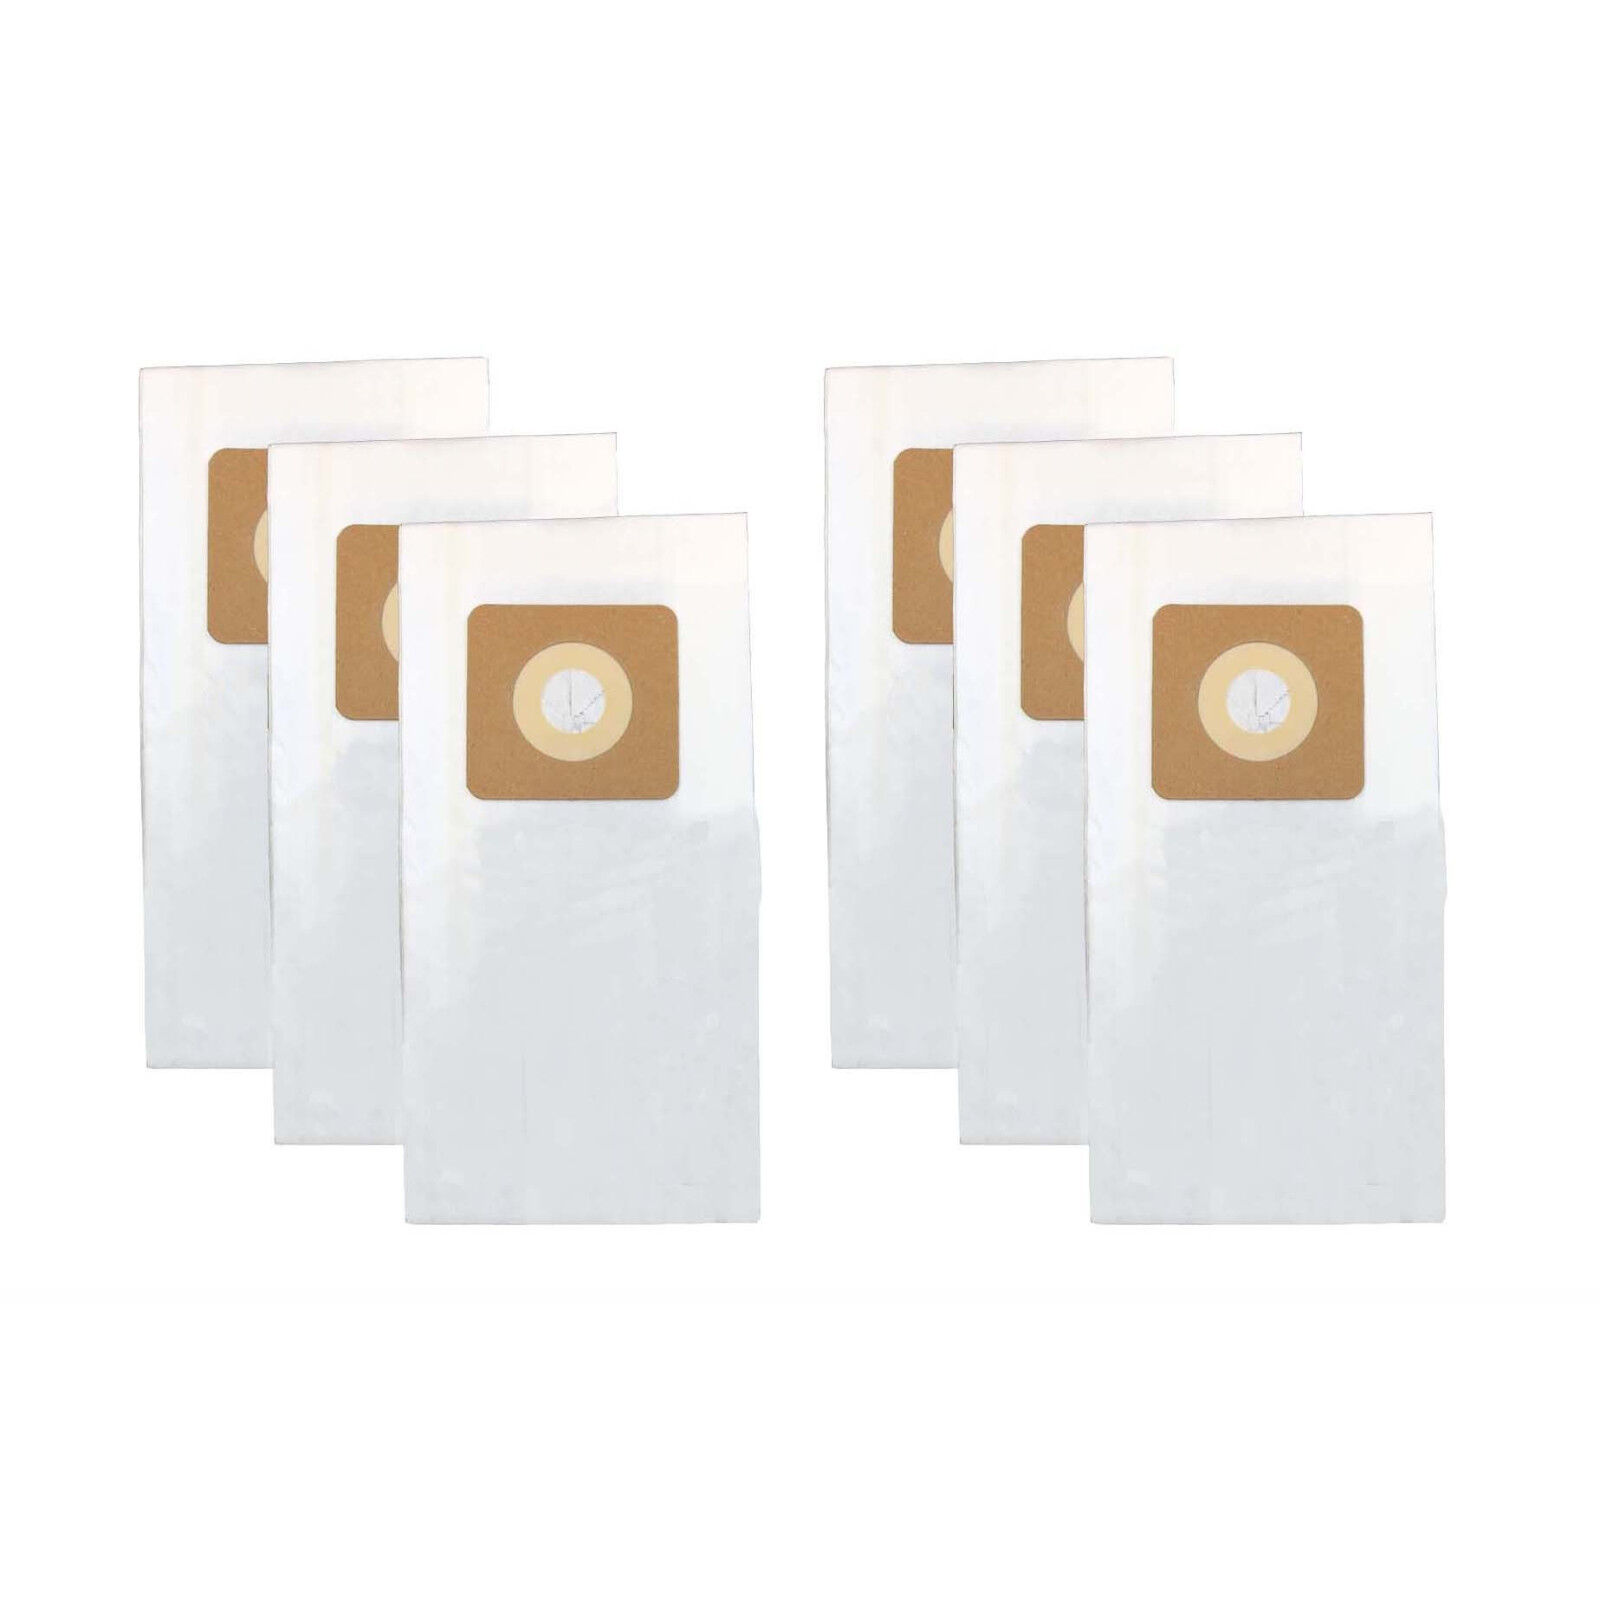 6 VACUUM BAGS for BISSELL STYLE 1 & 7, 30861  MICROLINED